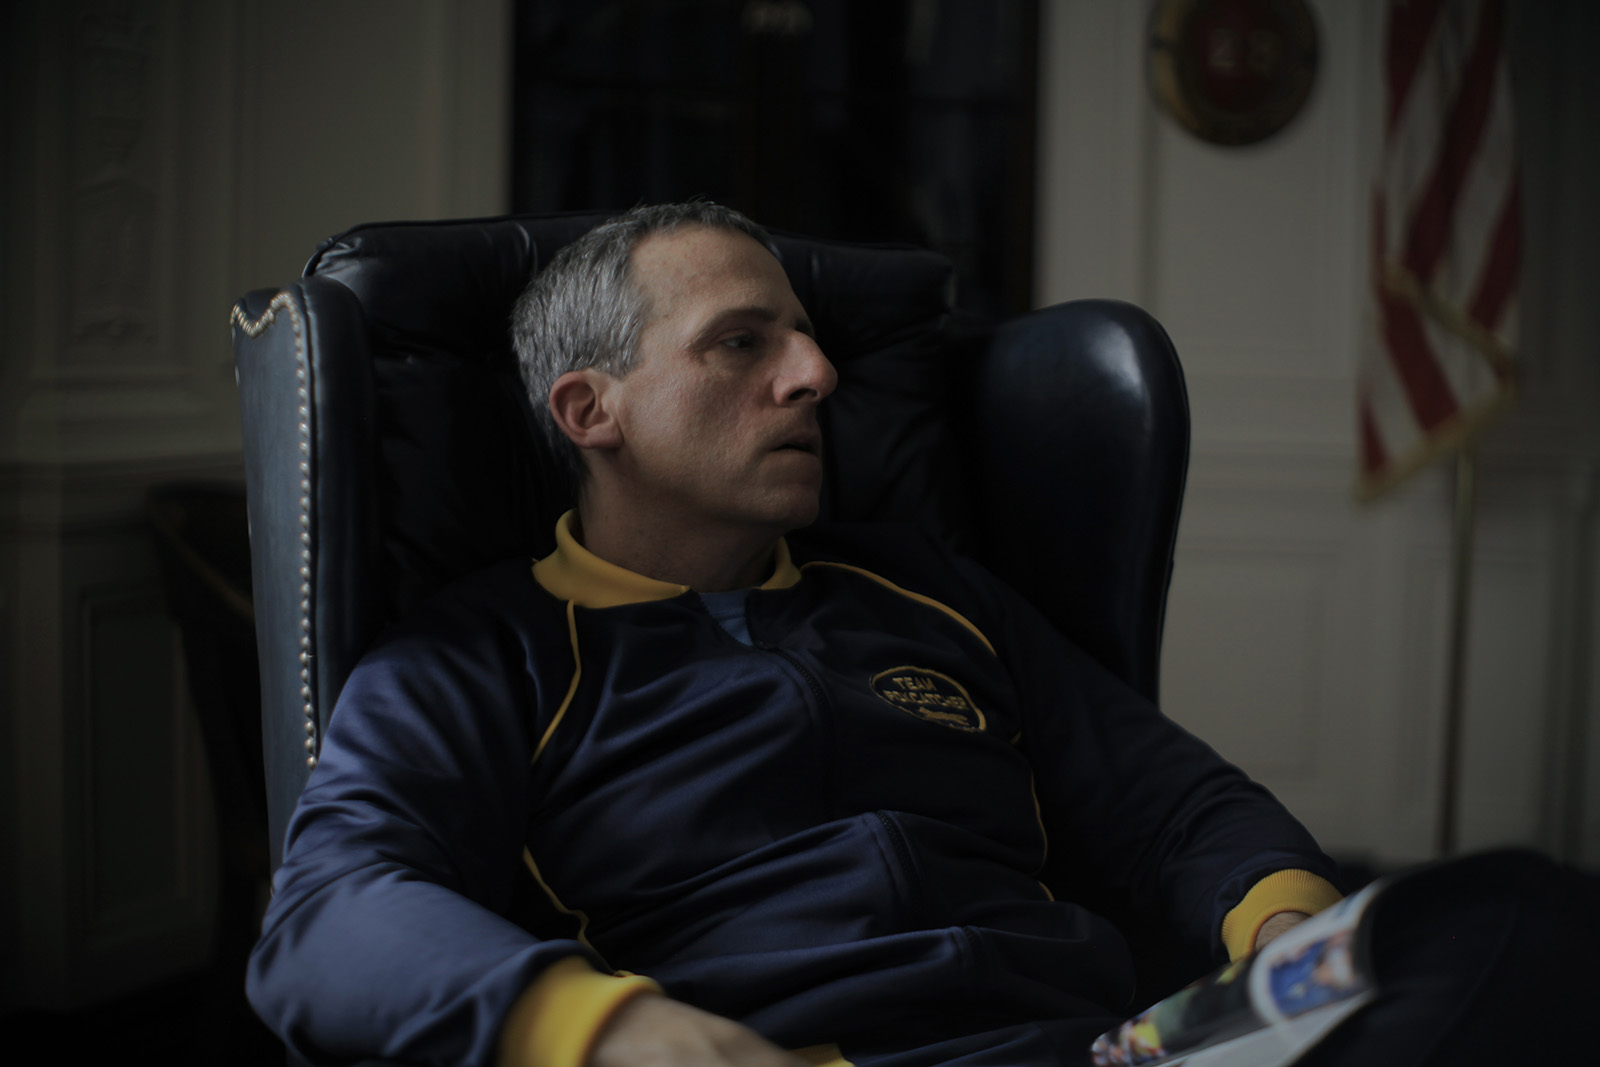 Foxcatcher-Official Poster Banner PROMO PHOTOS-17ABRIL2014-02